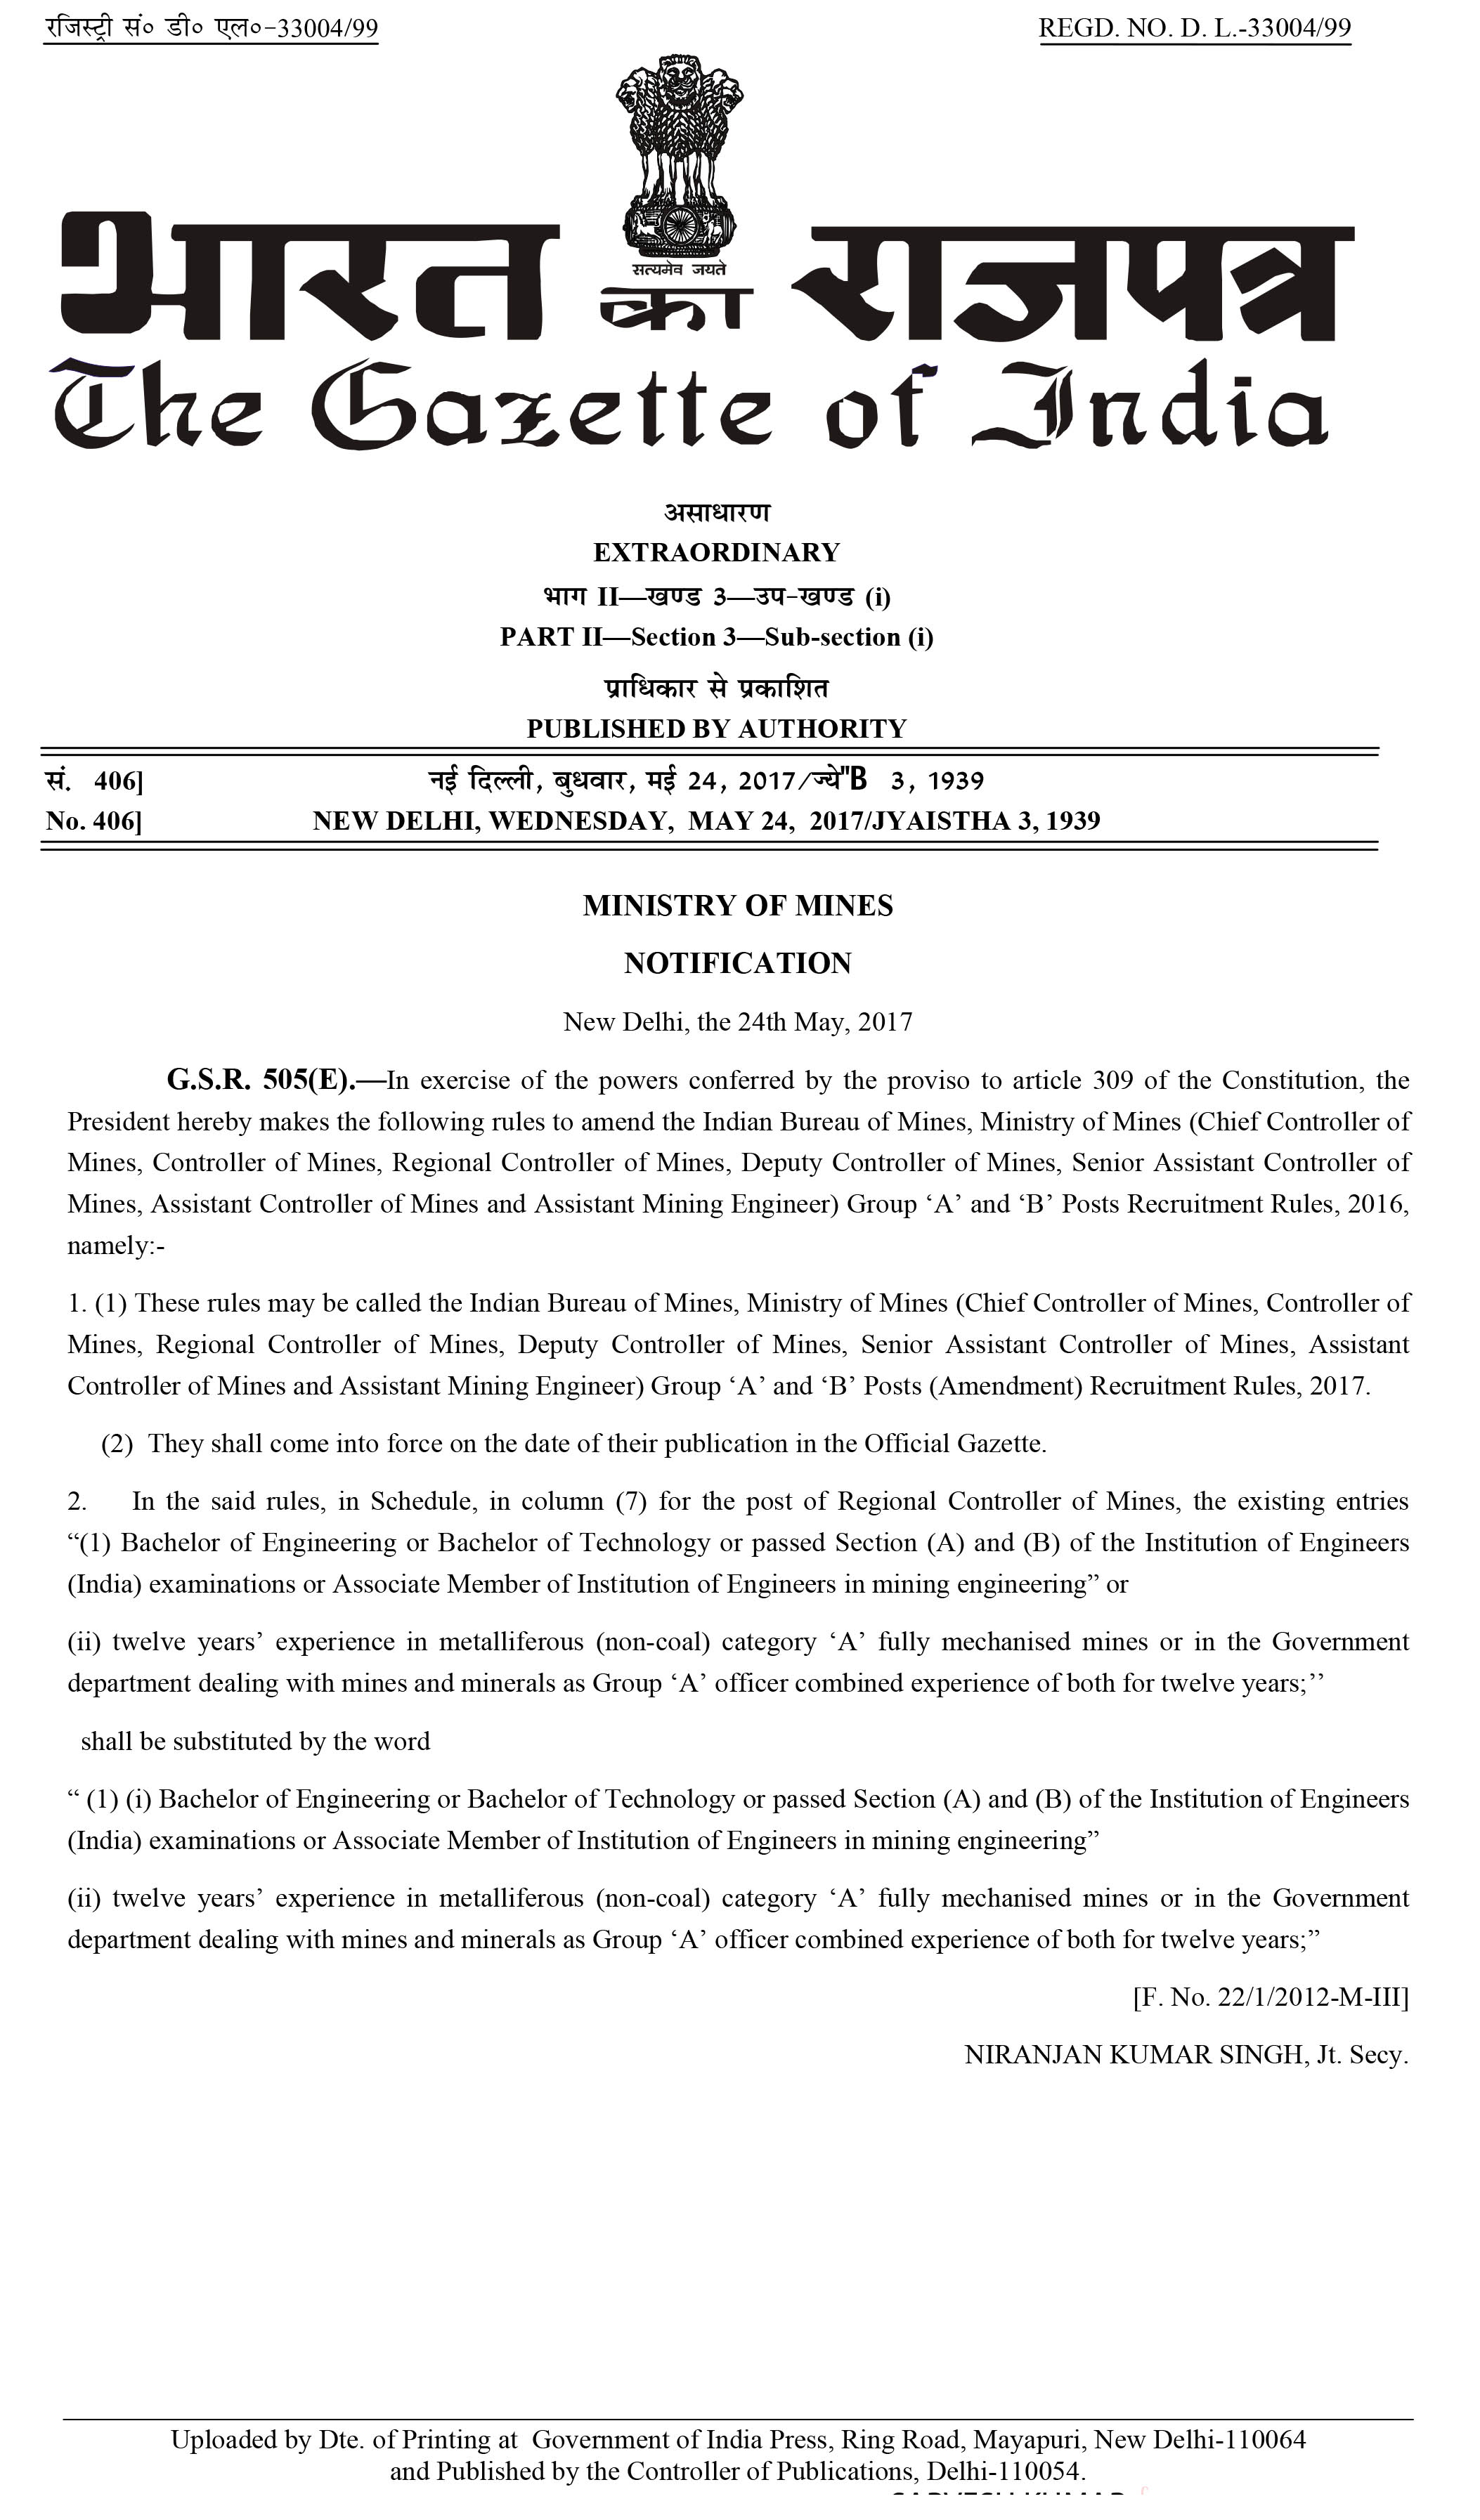 Notification 24th May 2017 - G S R 505(E)